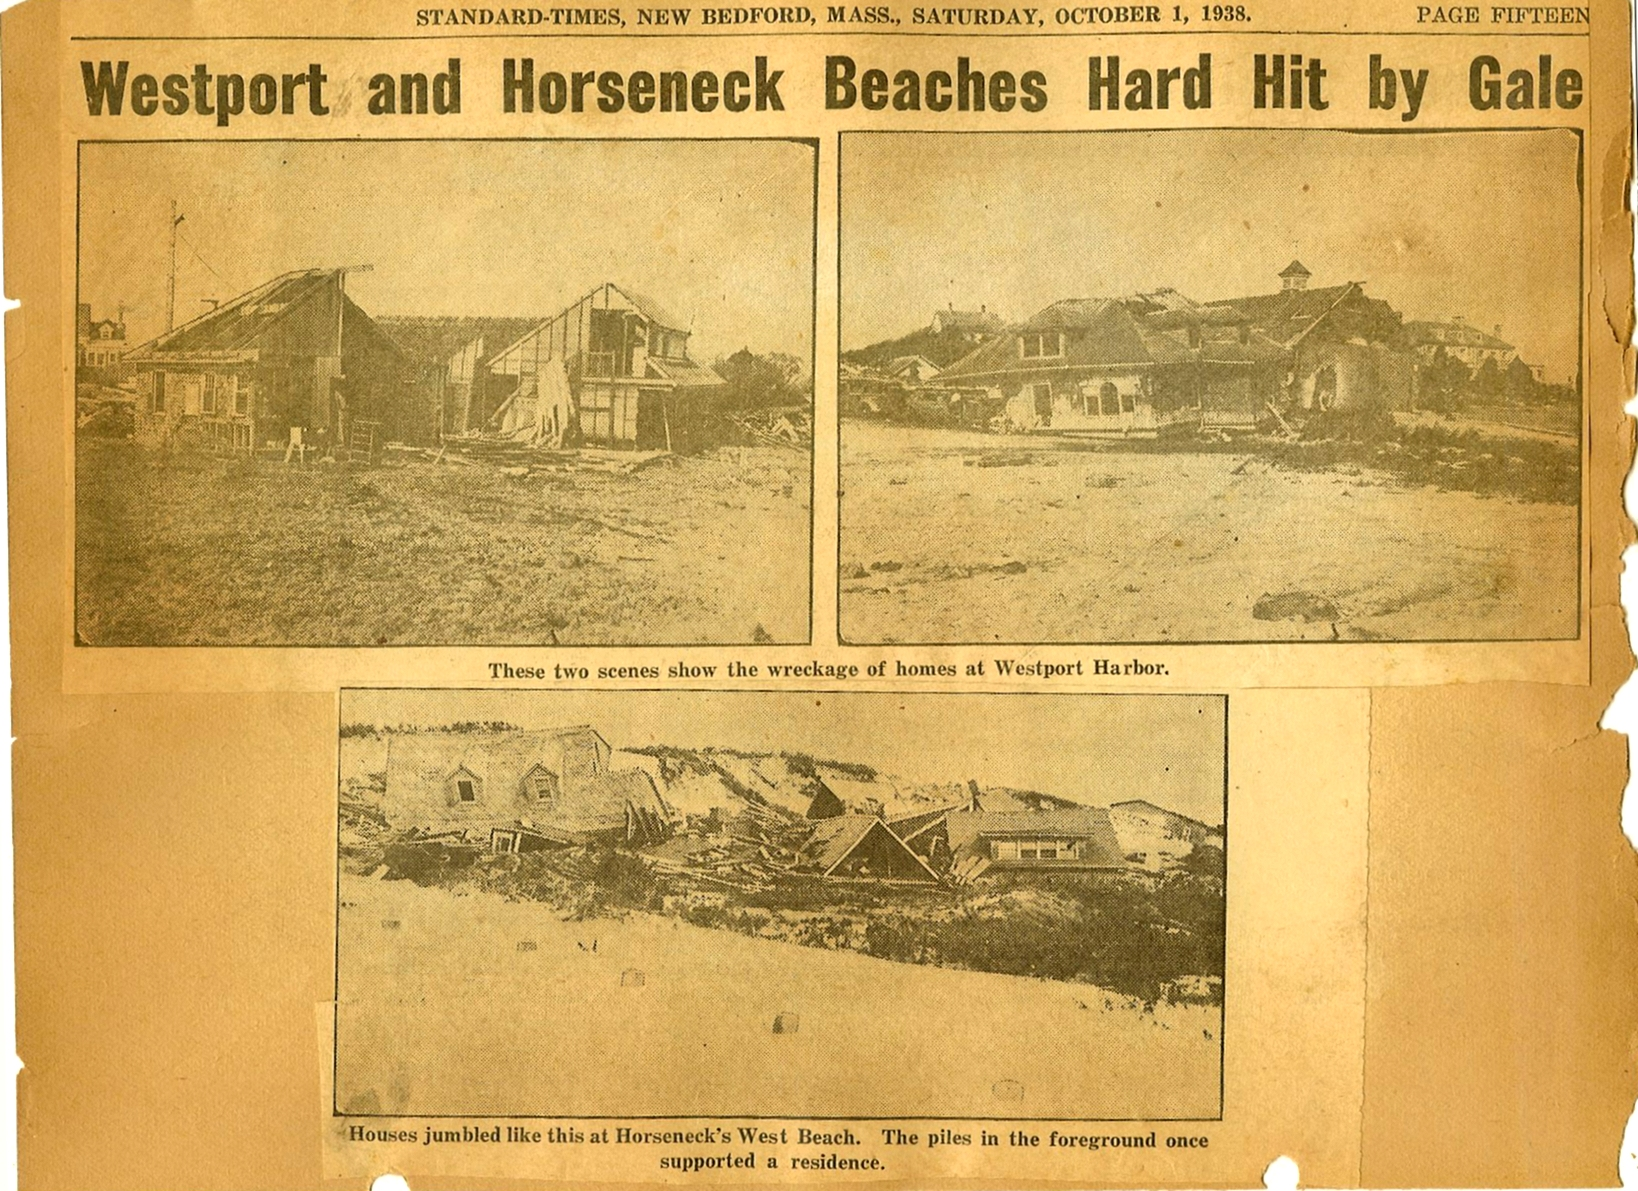 The 1938 Hurricane photos p34